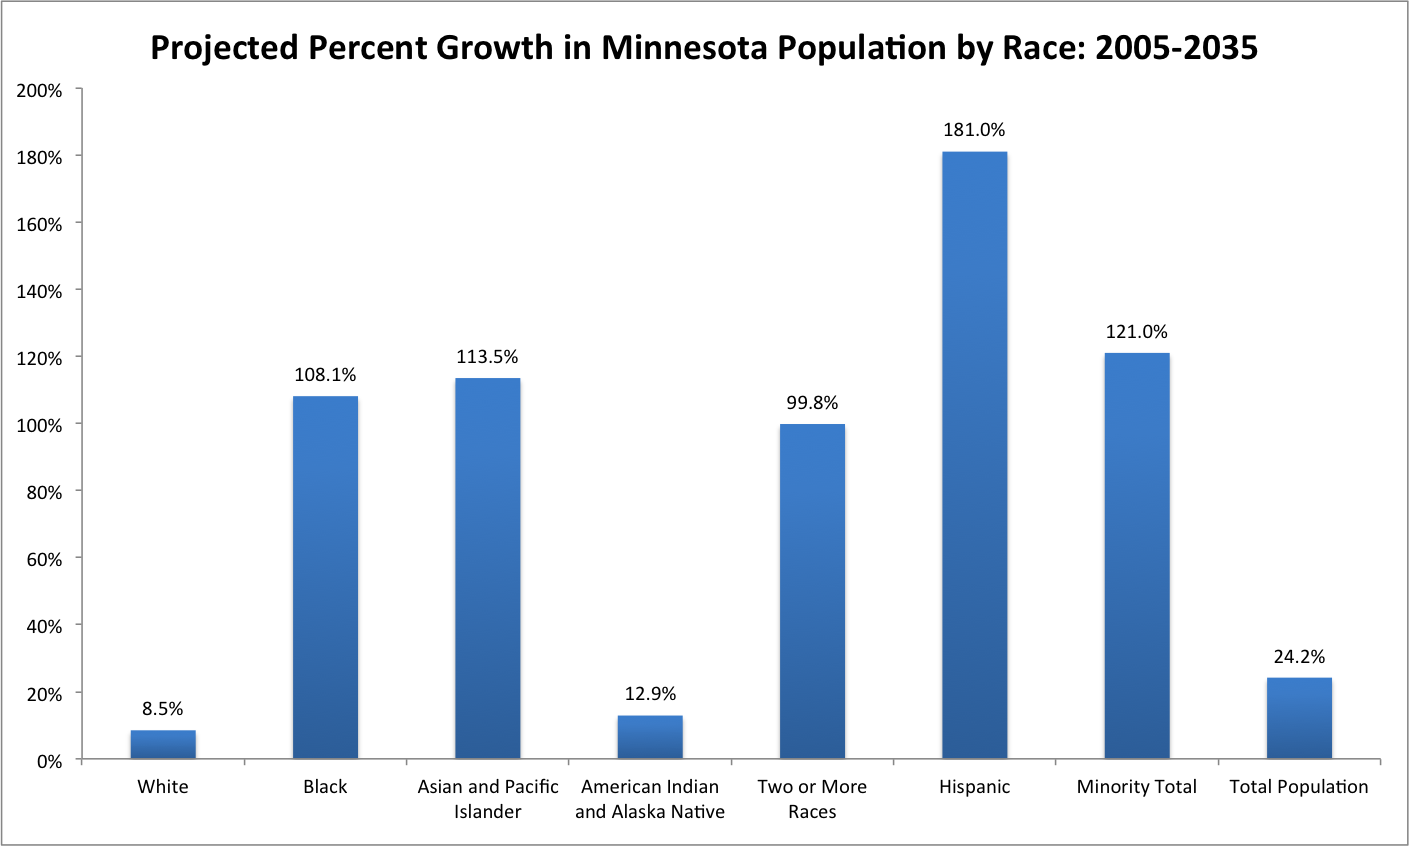 MN Population Grouth by Race